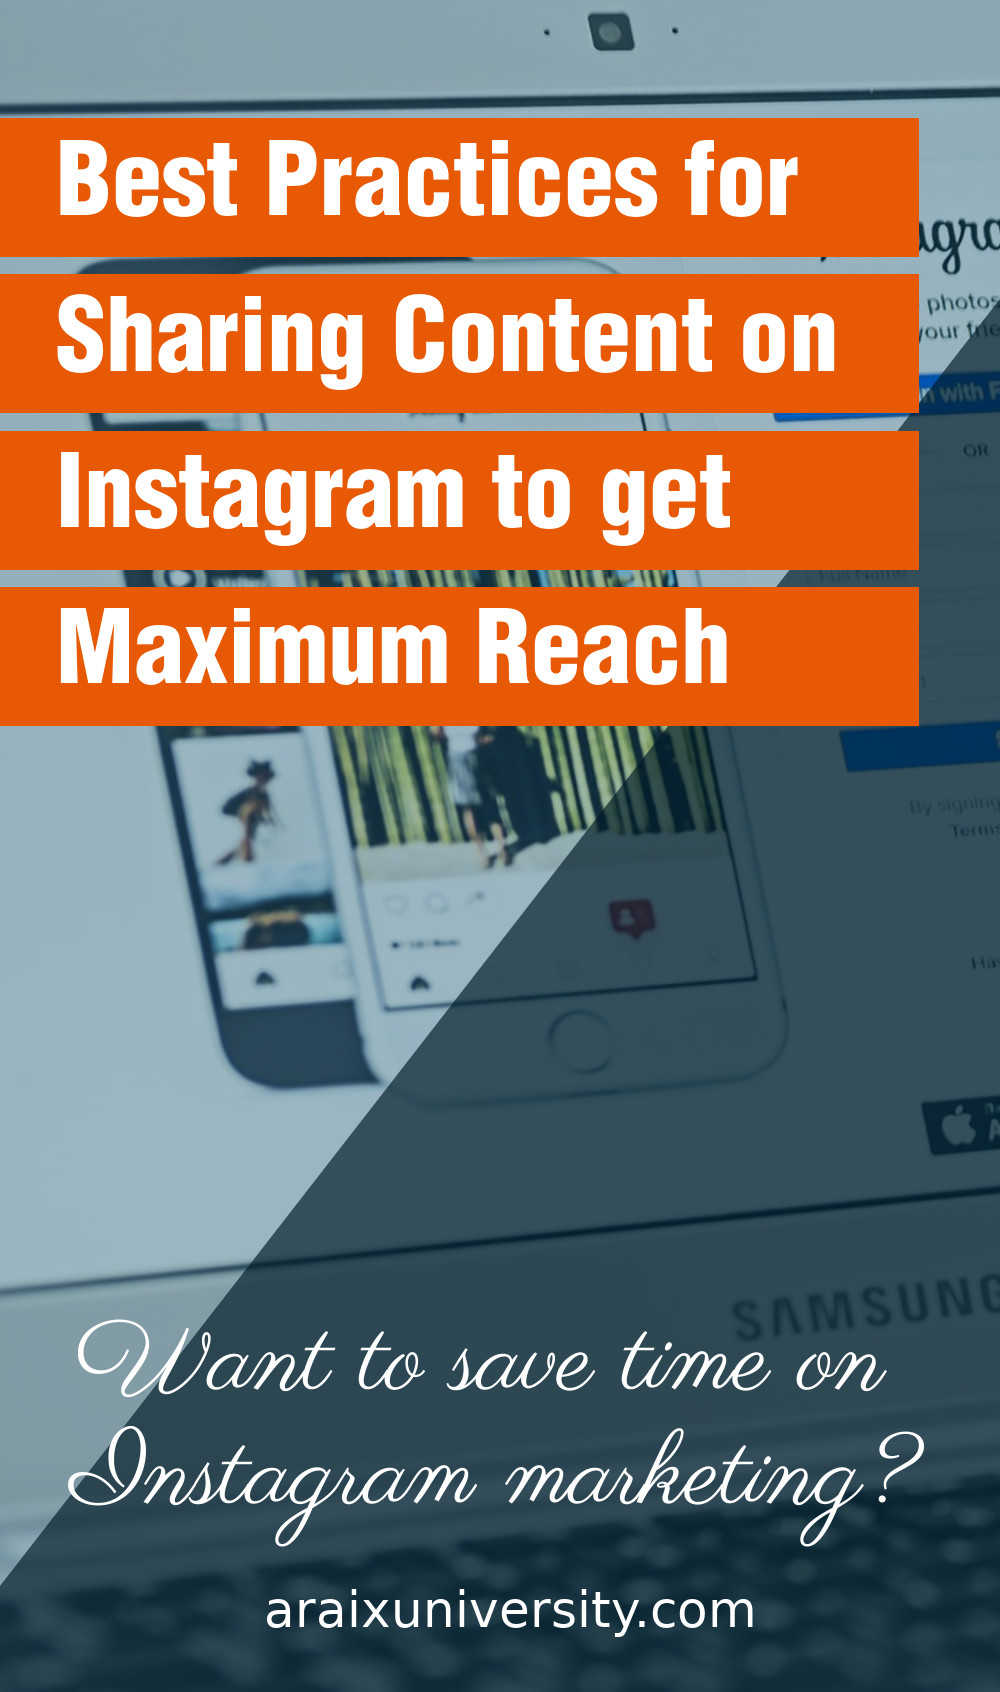 Best Practices for Sharing Content on Instagram to get Maximum Reach